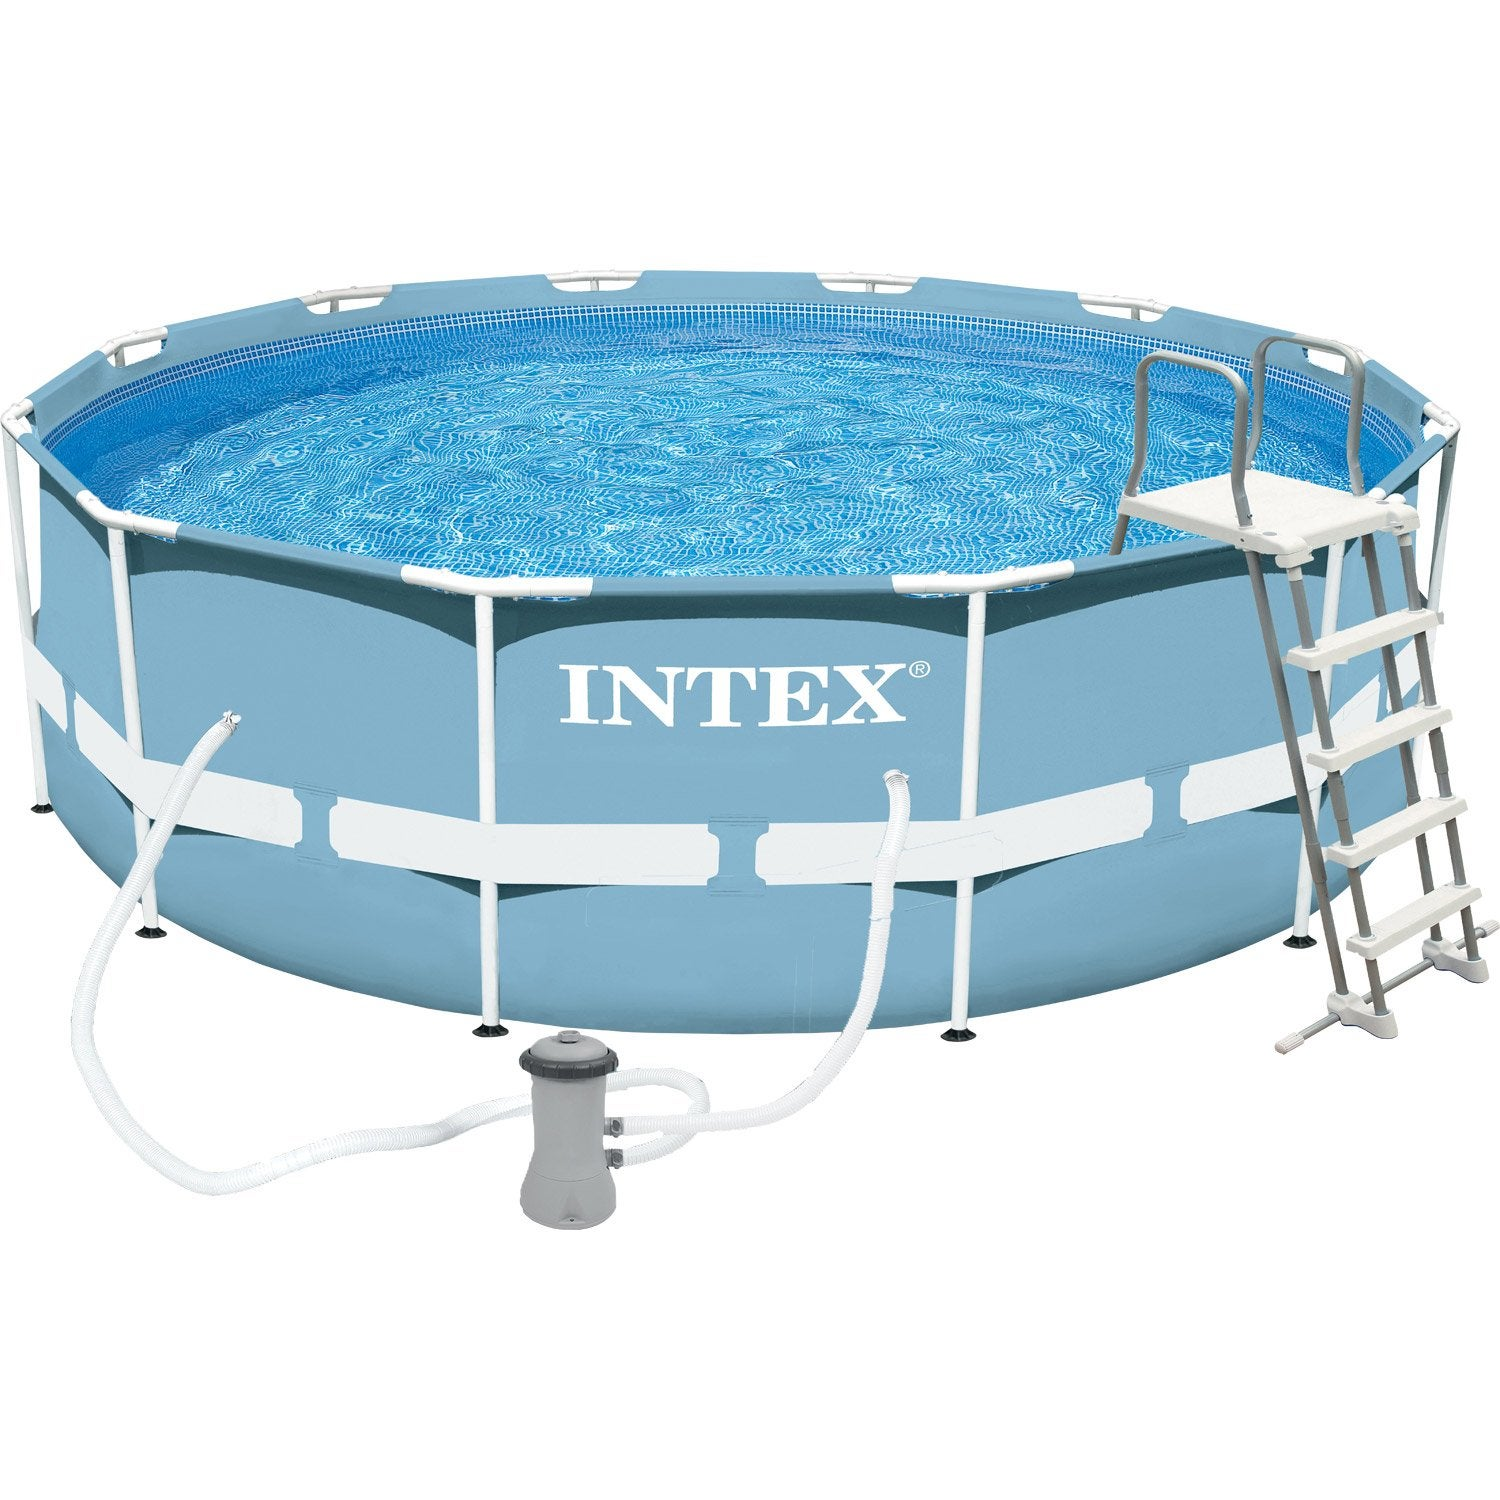 Piscine hors sol autoportante tubulaire prism frame intex for Piscine hors sol ultra frame